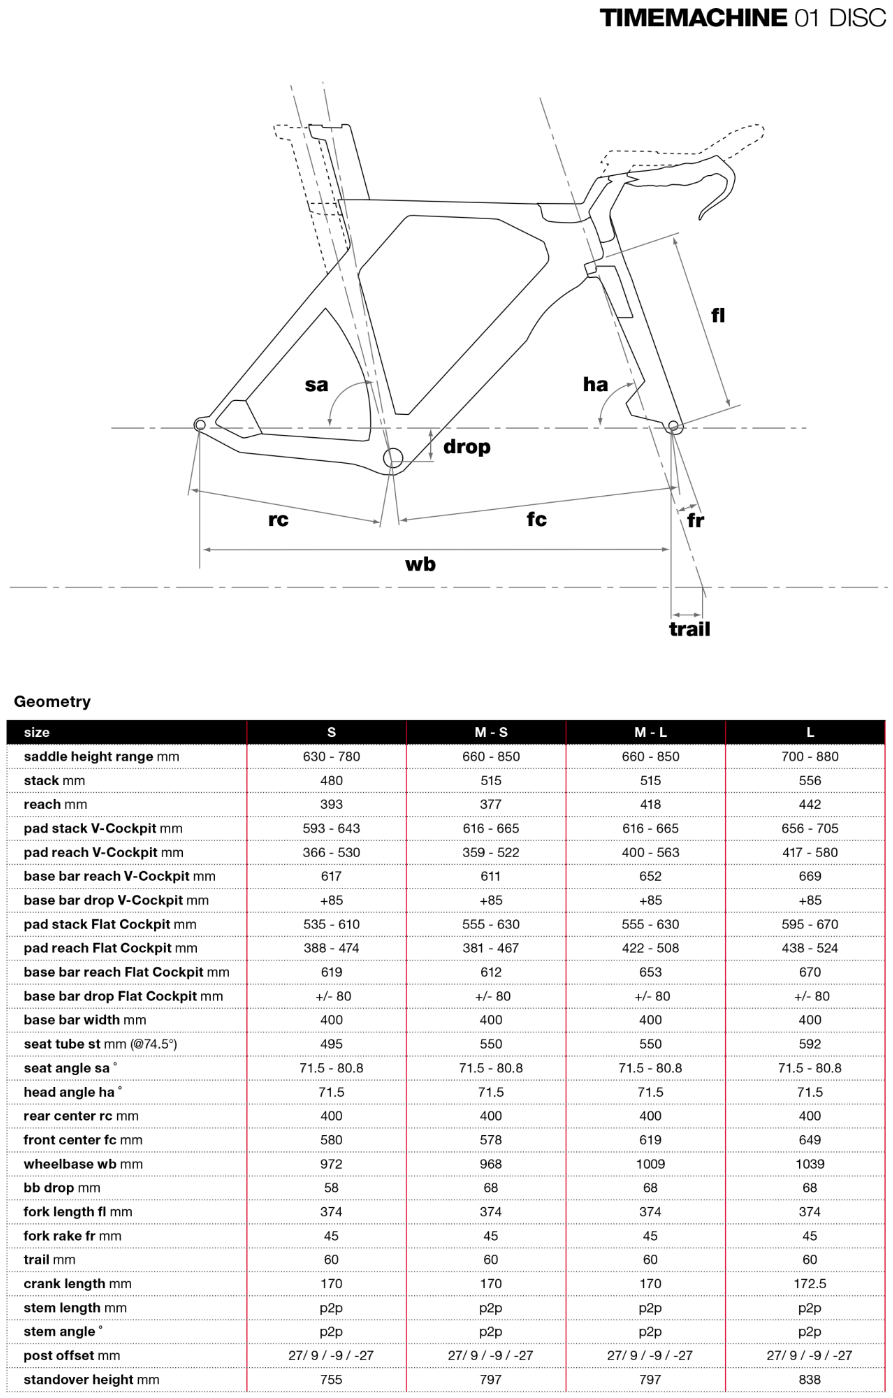 BMC Timemachine 01 Disc geometry chart